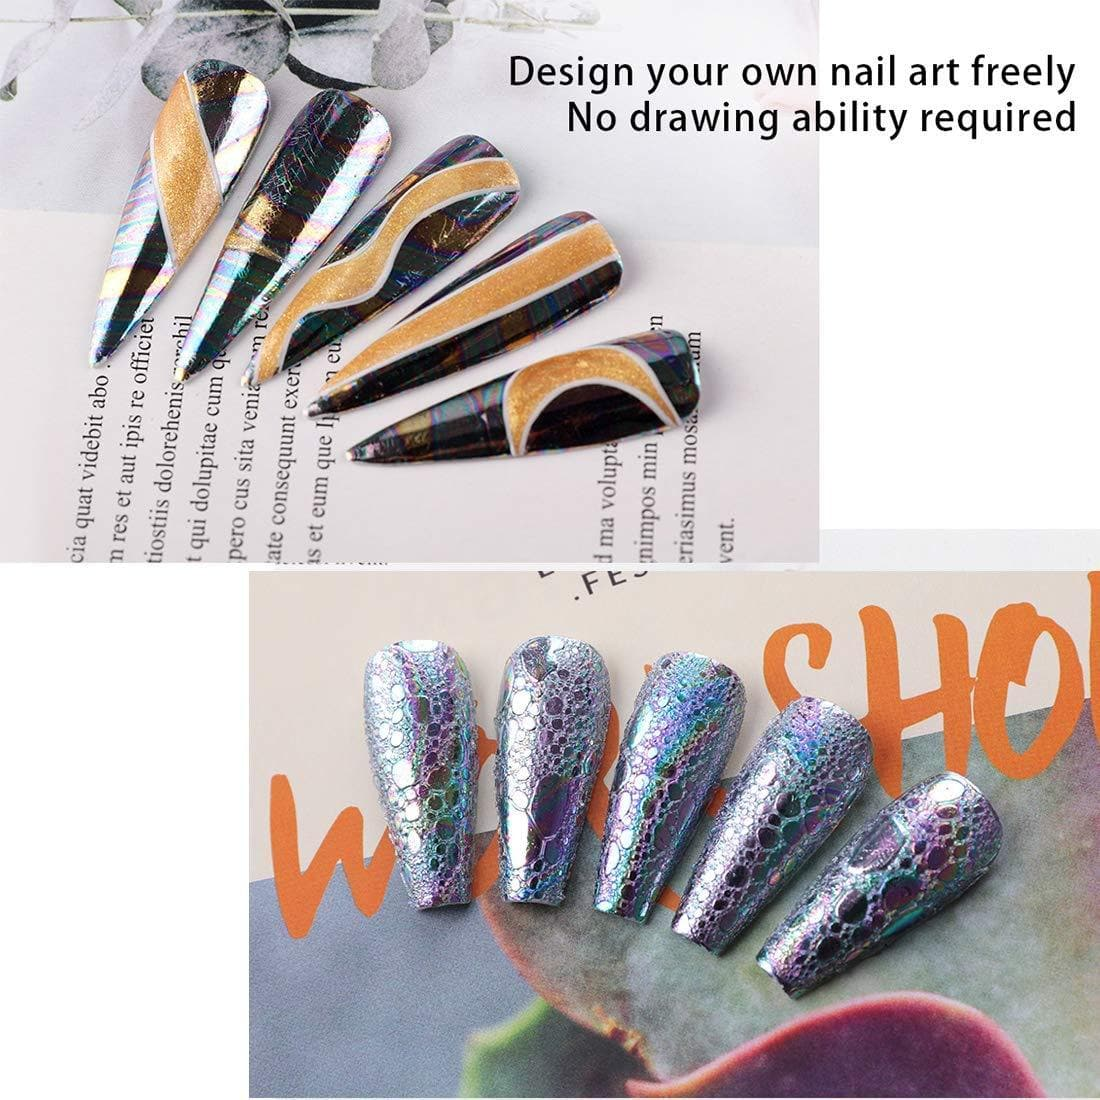 15ml Nail Art Foil Glue Gel - Makartt